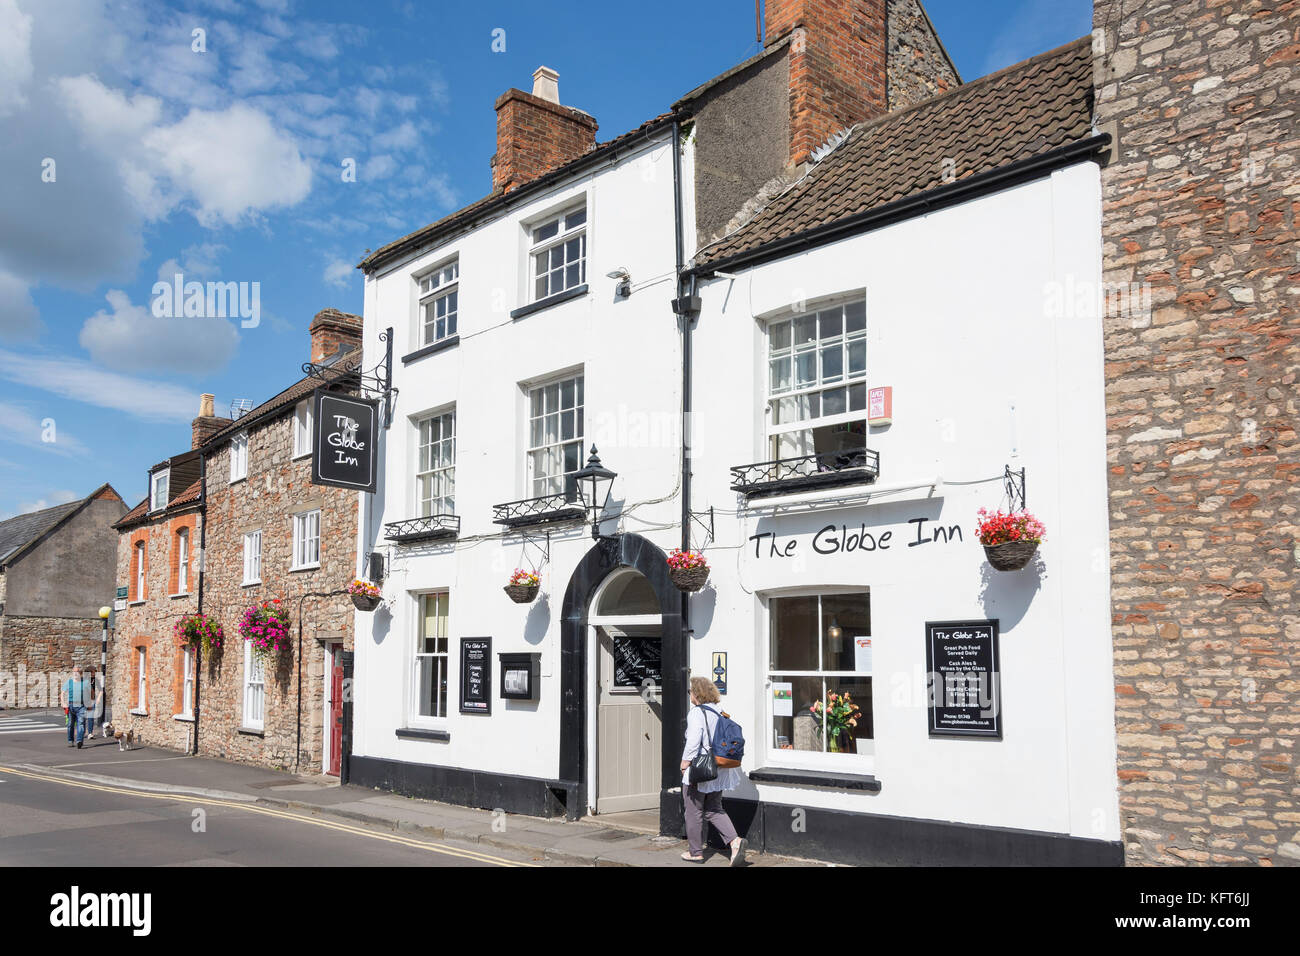 18th century The Globe Inn, Priest Row, Wells, Somerset, England, United Kingdom - Stock Image